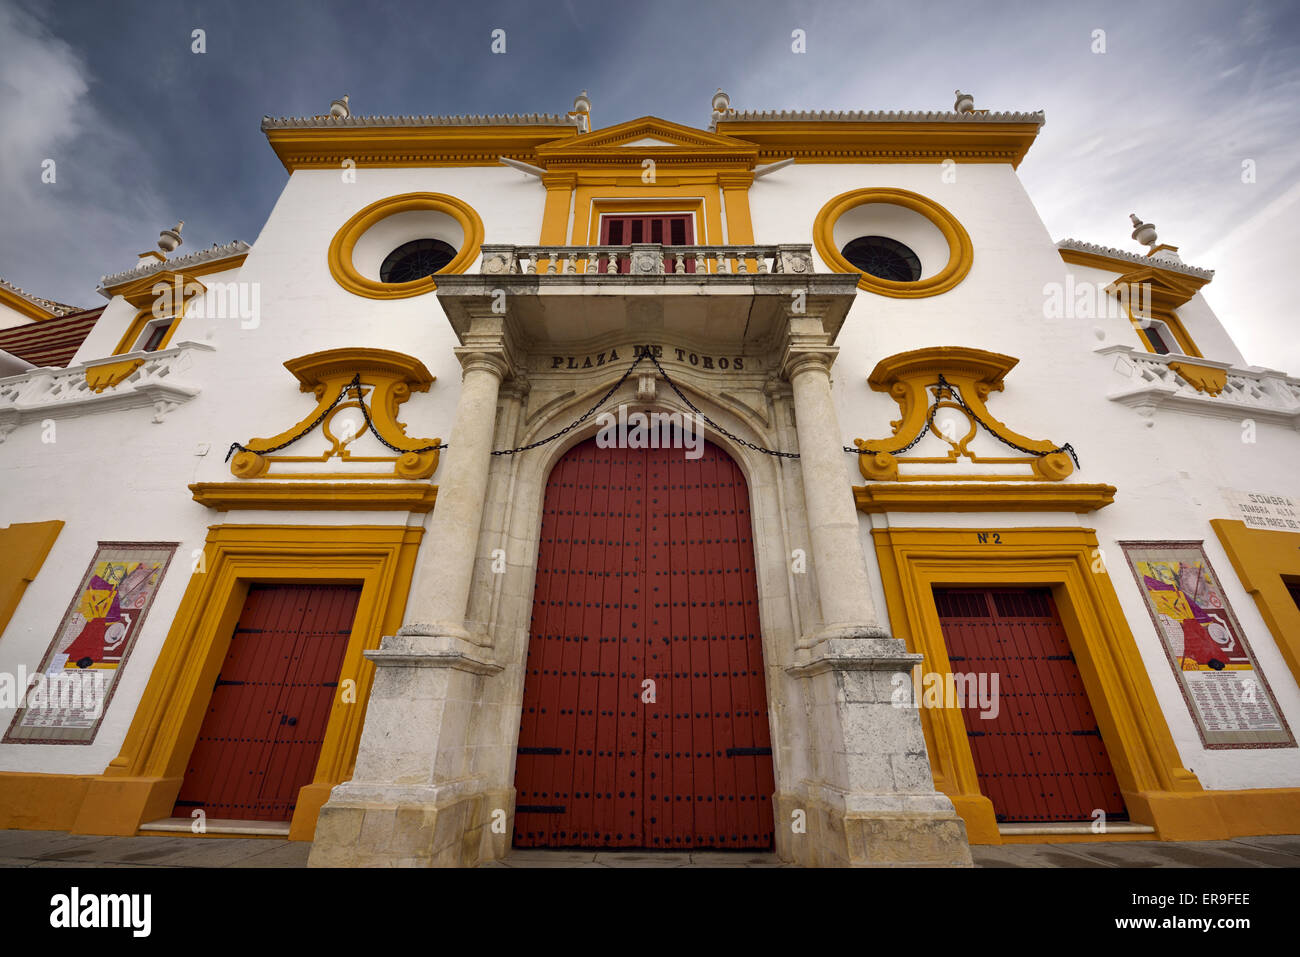 Front doors and baroque facade of the Plaza de Toros Bull fighting ring in Seville Spain - Stock Image